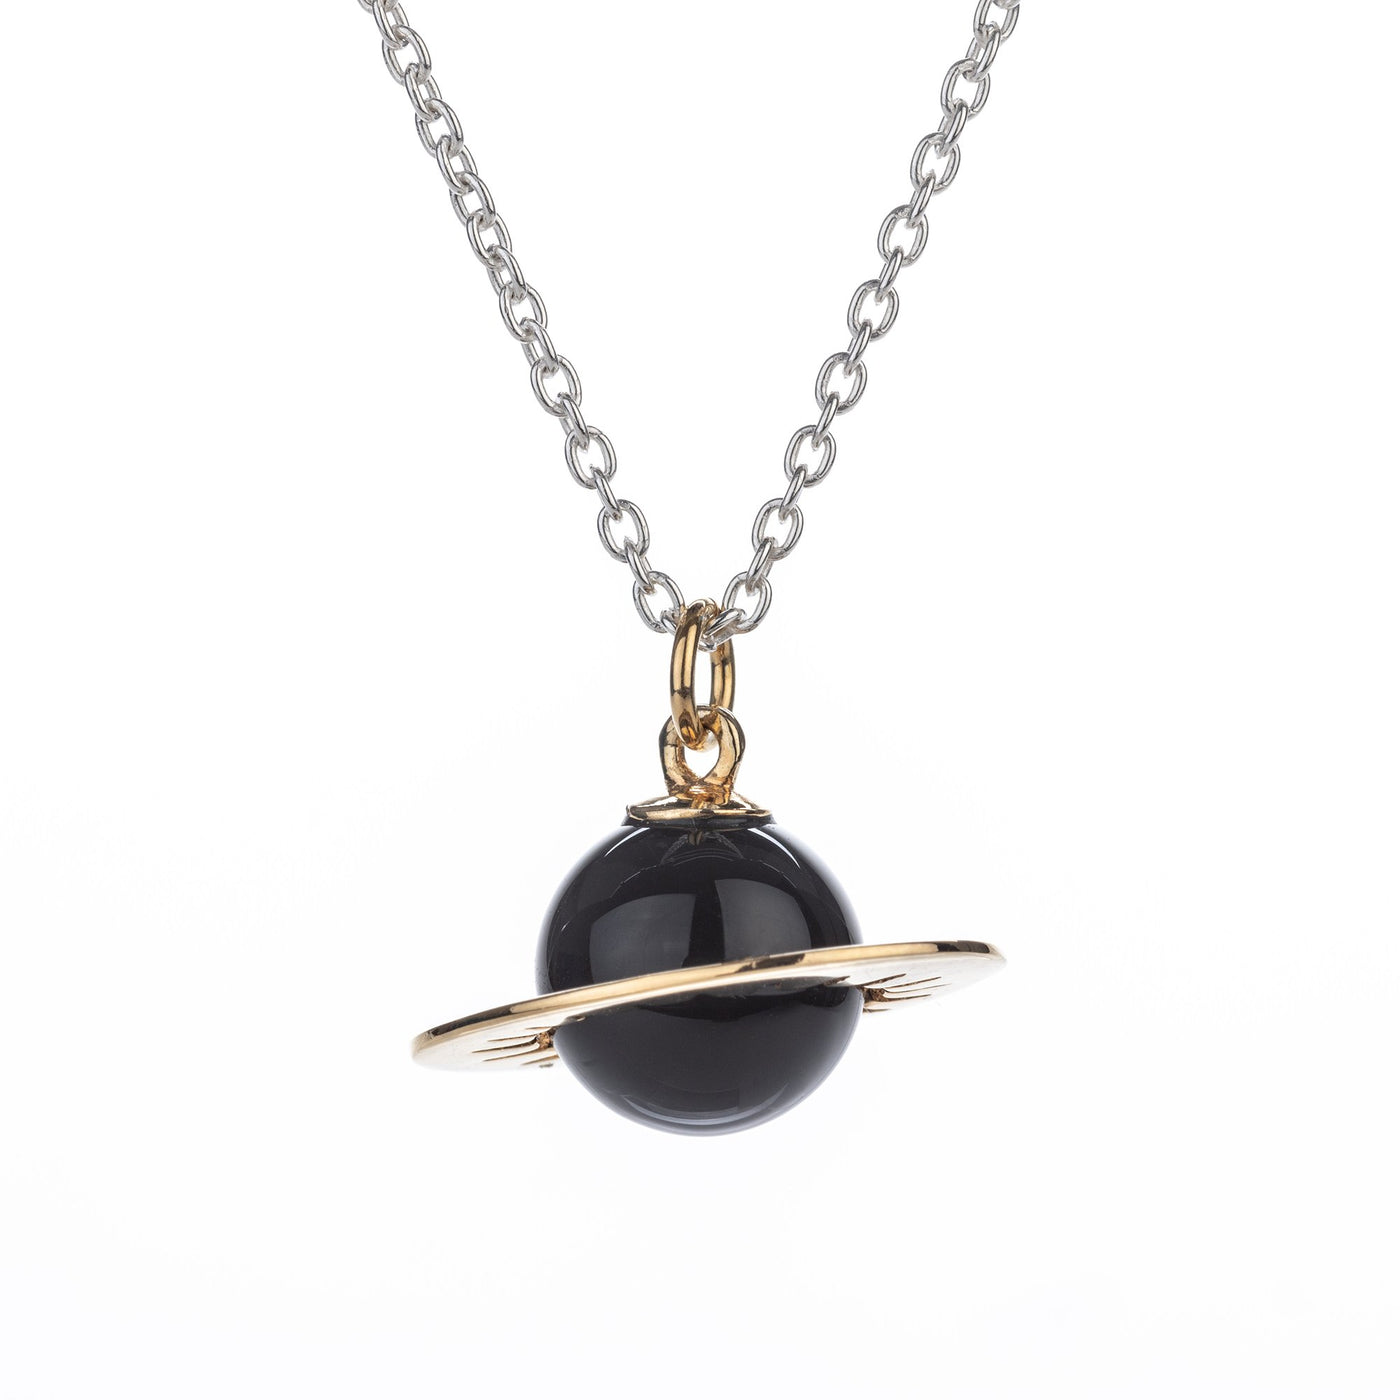 Orb Pendant Necklace Black Onyx Tina Lilienthal